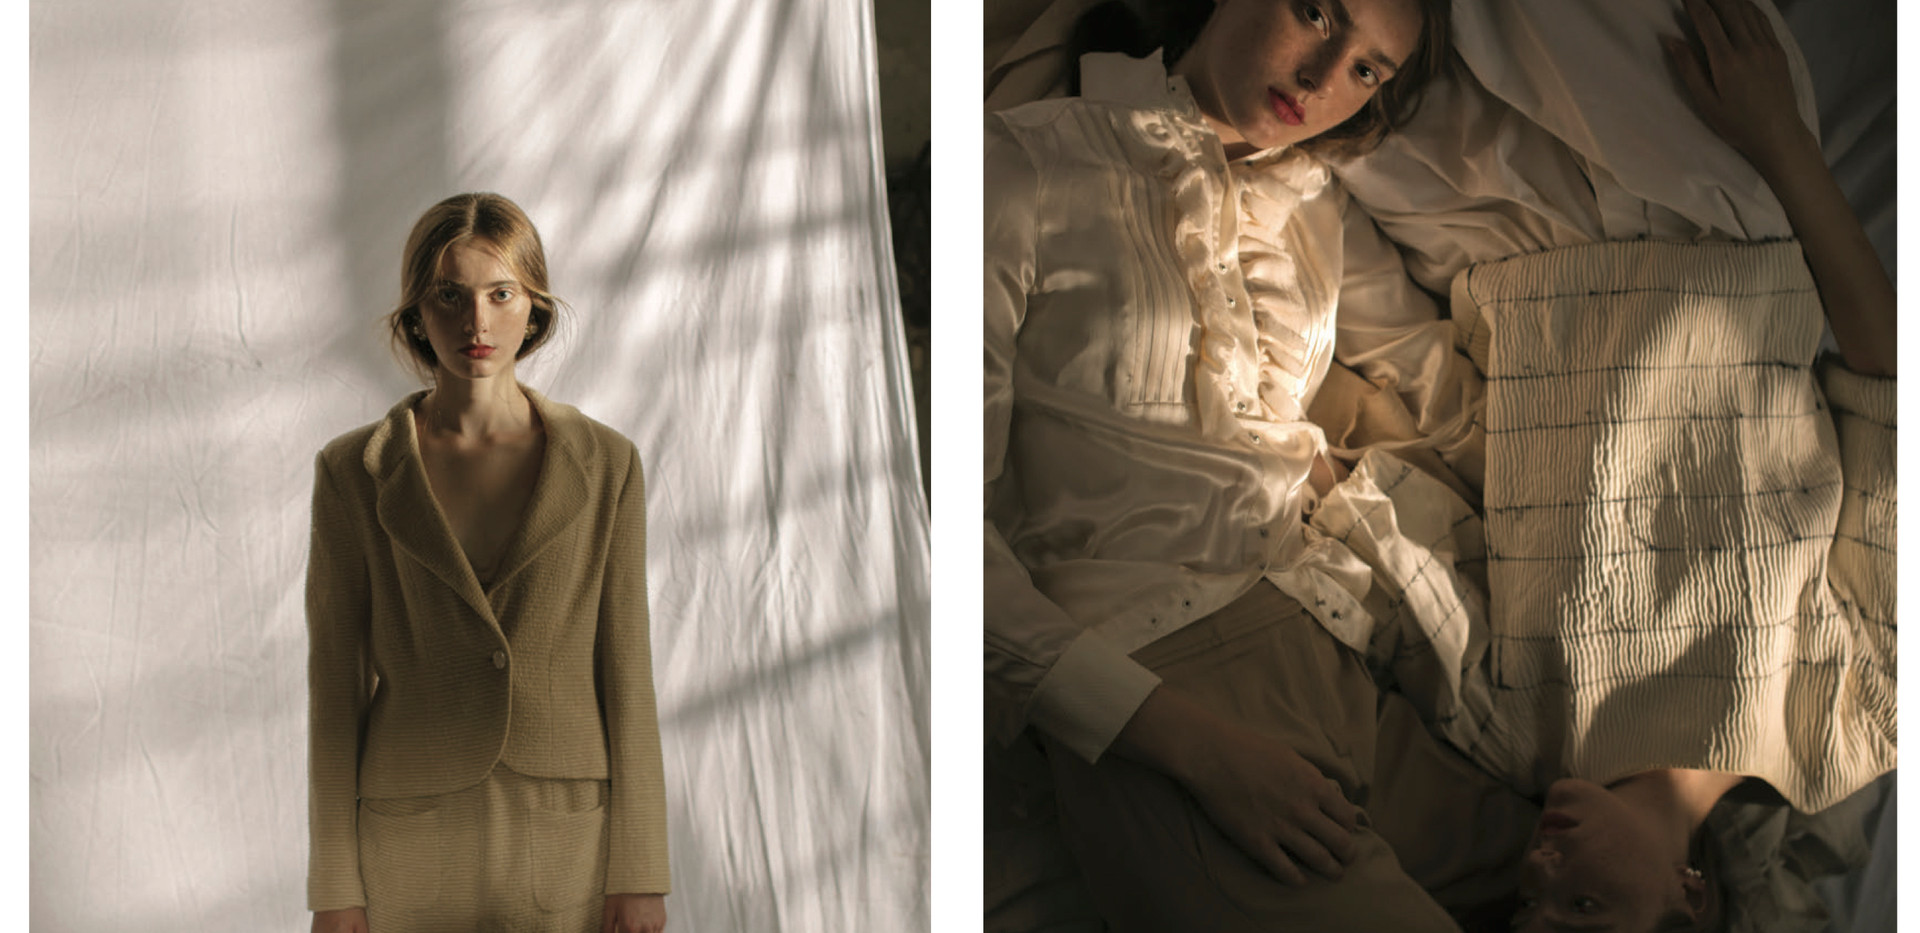 Photo: CAYETANO GONZALEZ  Stylist: ROMA LANSKY  Make-Up & Hair: ANA SANCHEZ-PEÑA  Models: DIANA AND ZHANNA PASKAR, YOO MODELS